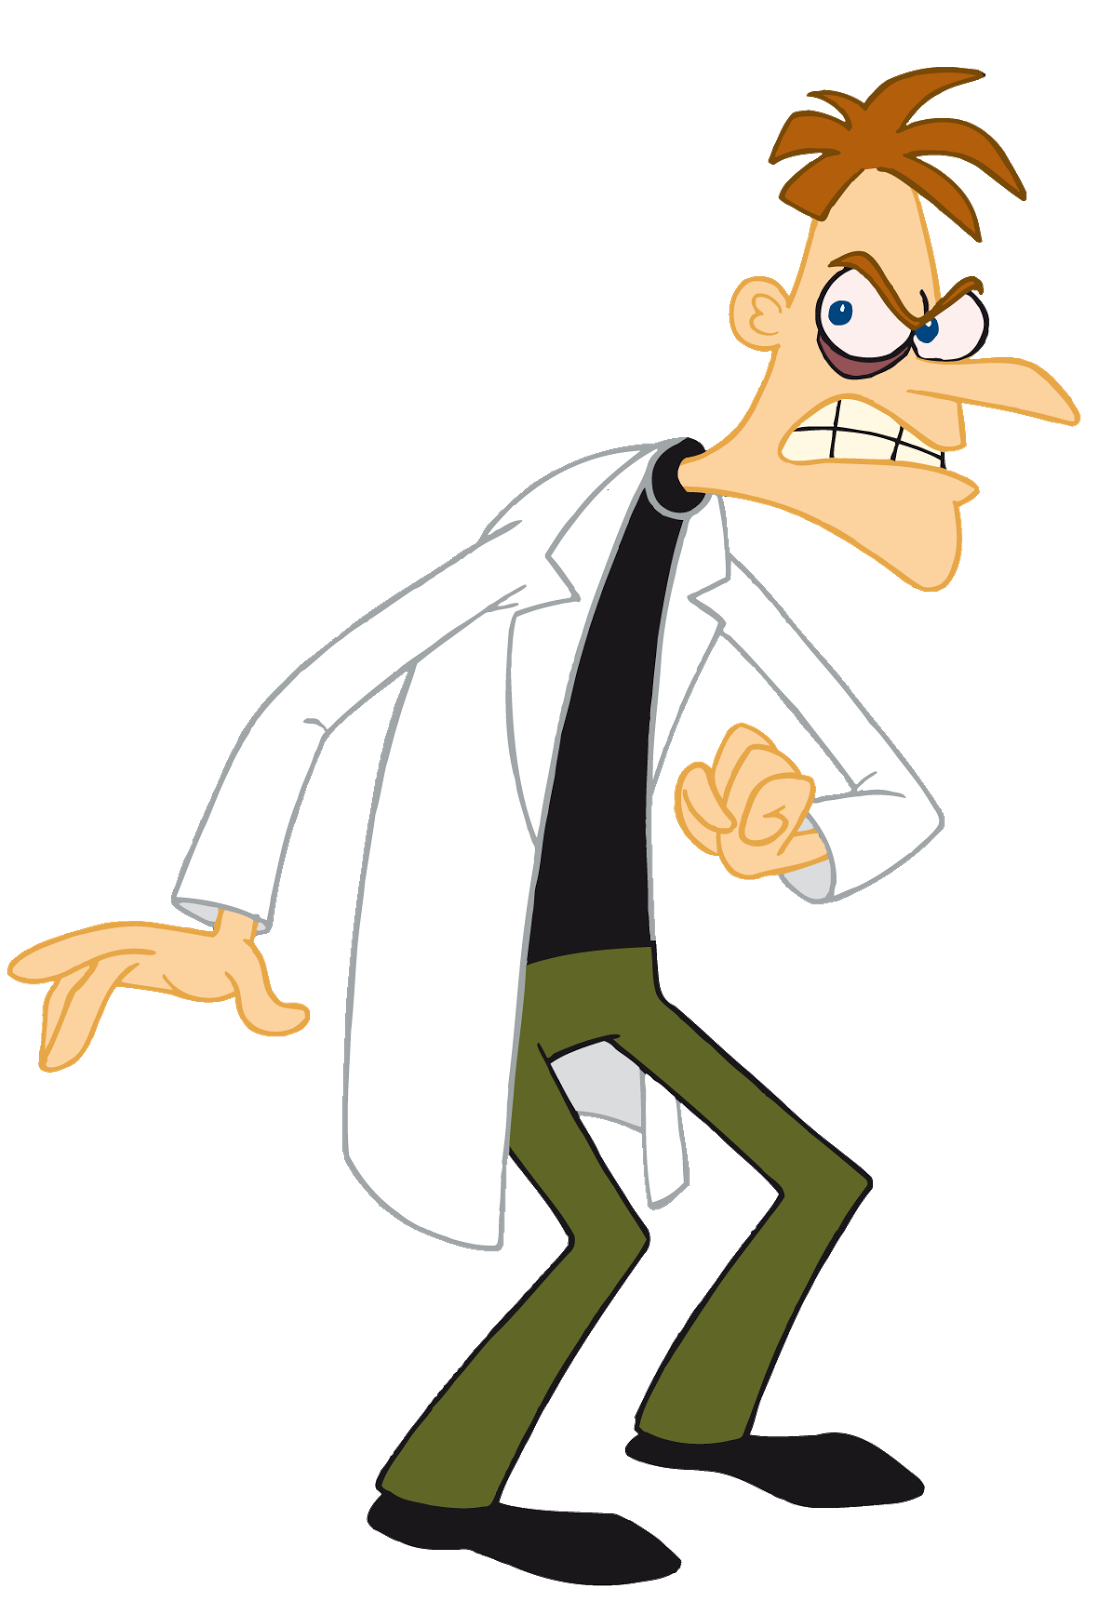 Cartoon Characters Phineas And Ferb Png